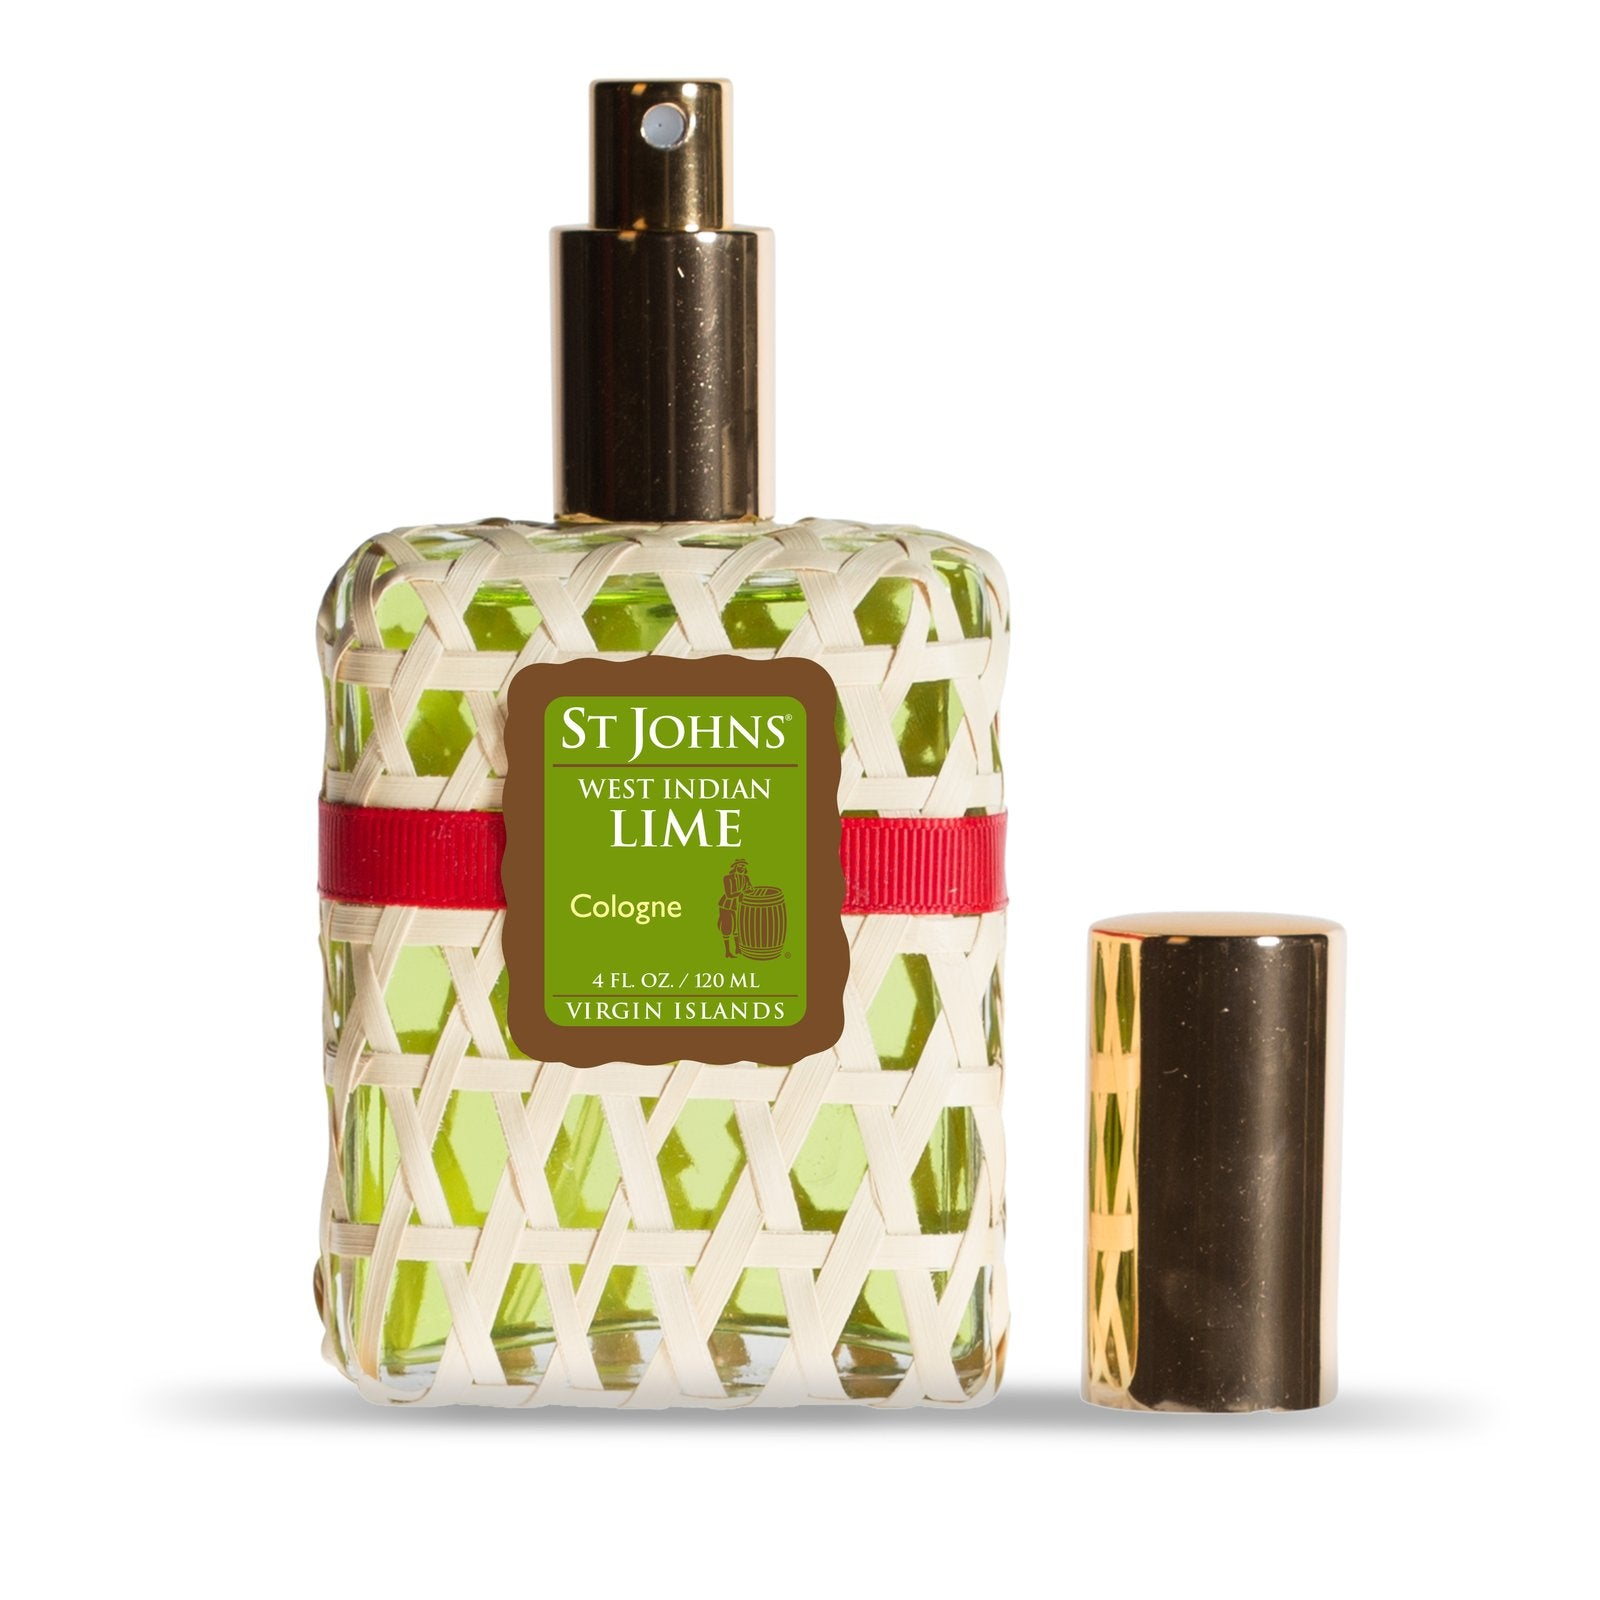 St Johns West Indian Lime Cologne